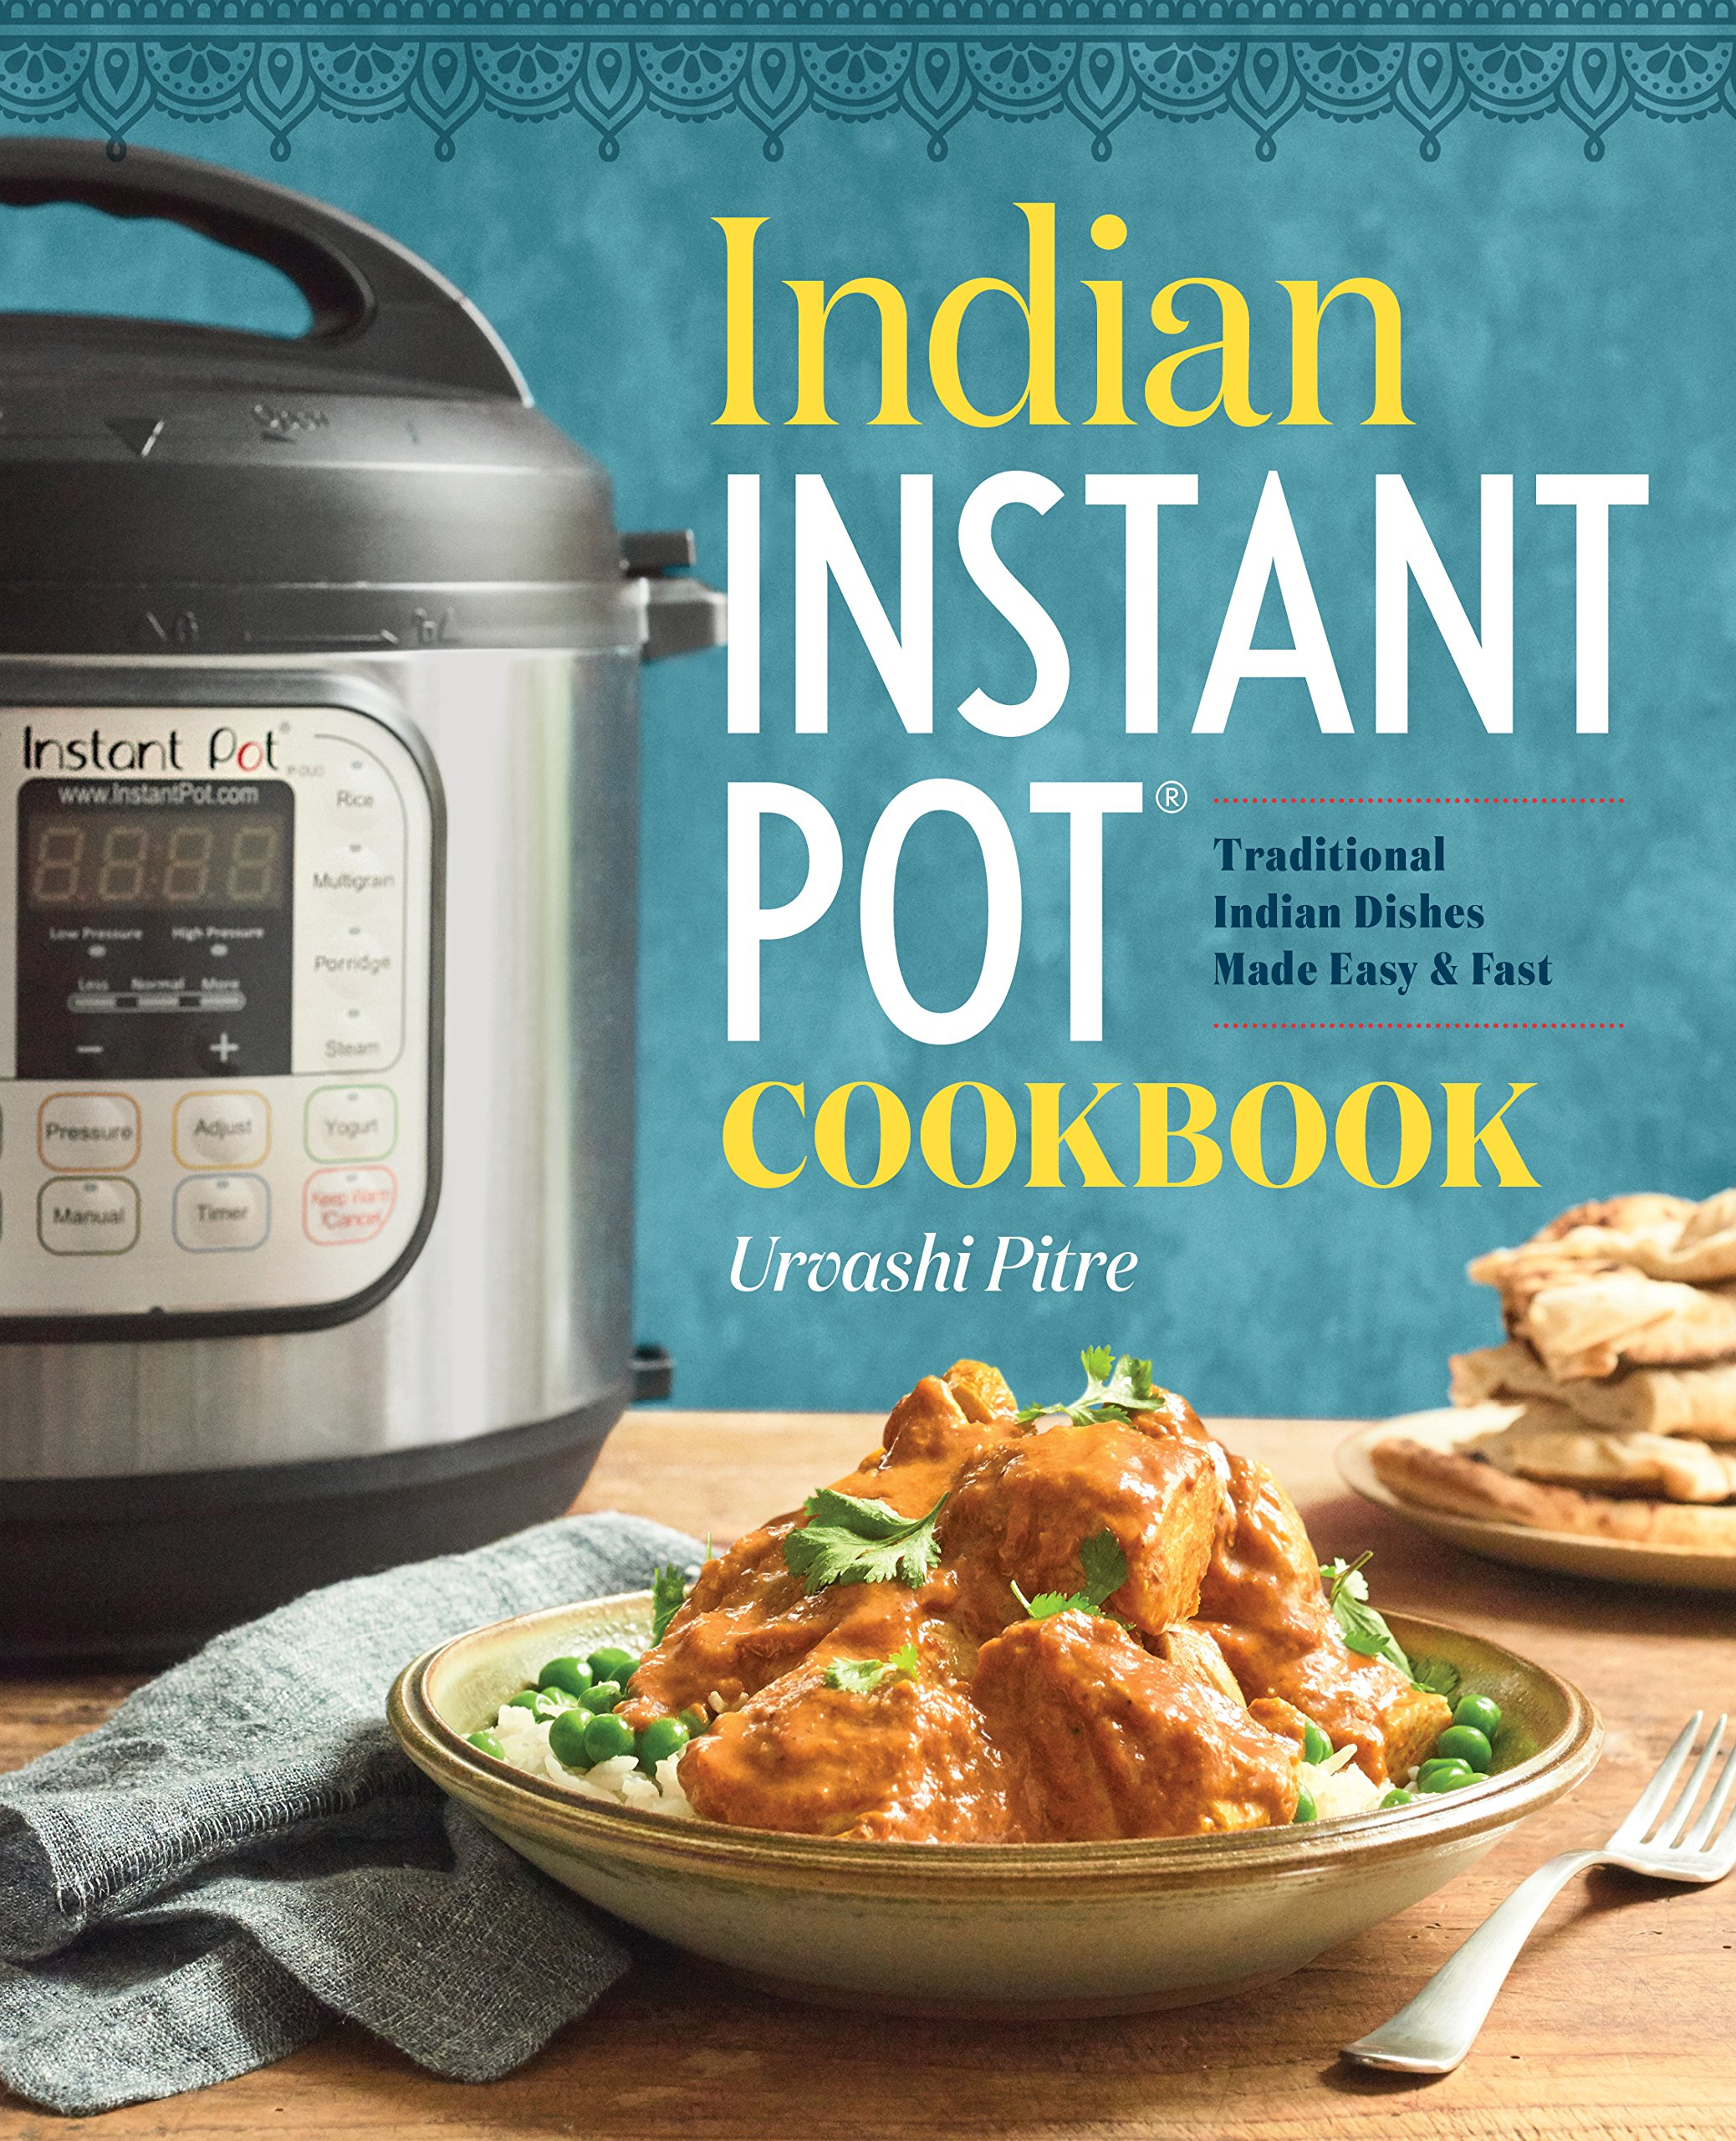 Indian Instant Pot  Cookbook  Traditional Indian Dishes Made Easy and Fast   Urvashi Pitre  9781939754547  Amazon com  BooksIndian Instant Pot  Cookbook  Traditional Indian Dishes Made Easy  . Amazon Kitchens Of India Butter Chicken. Home Design Ideas